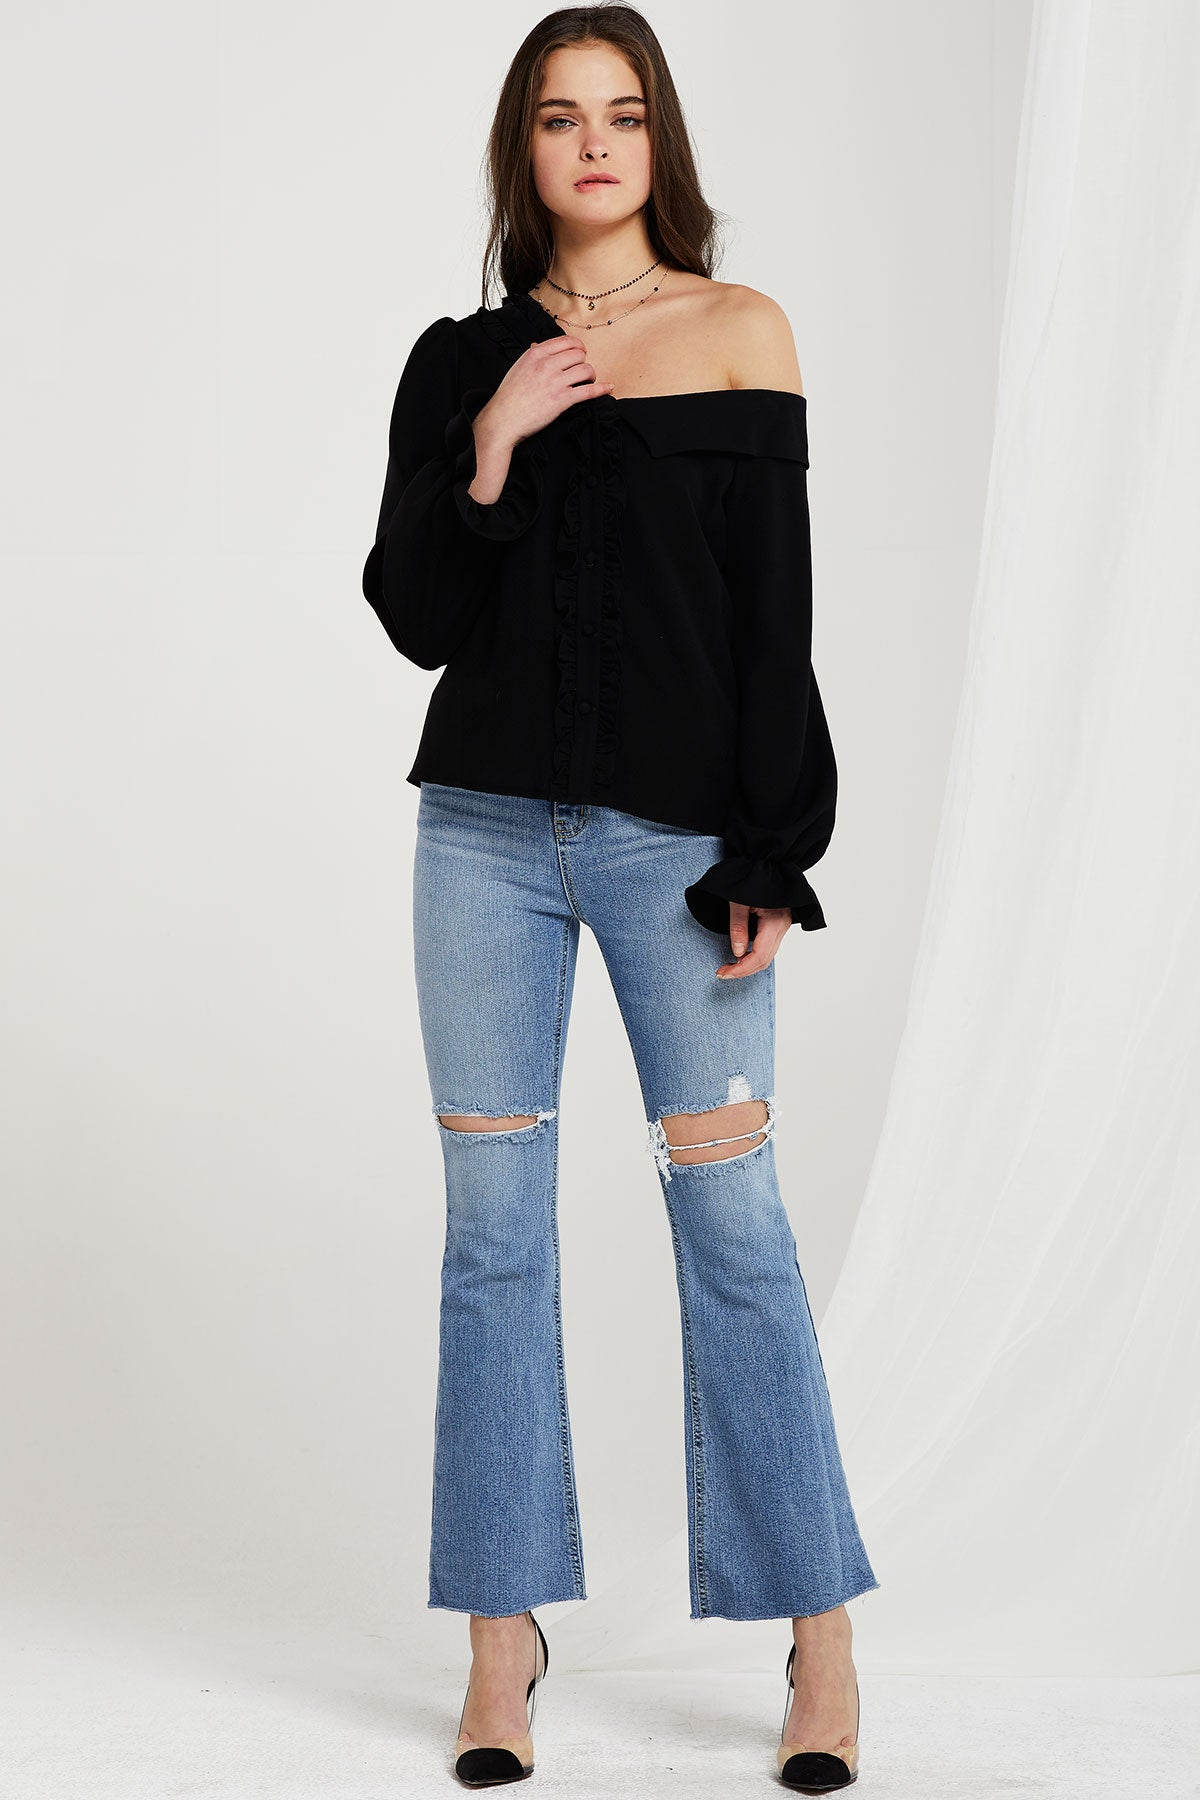 Lucca One Shoulder Blouse (Pre-Order)